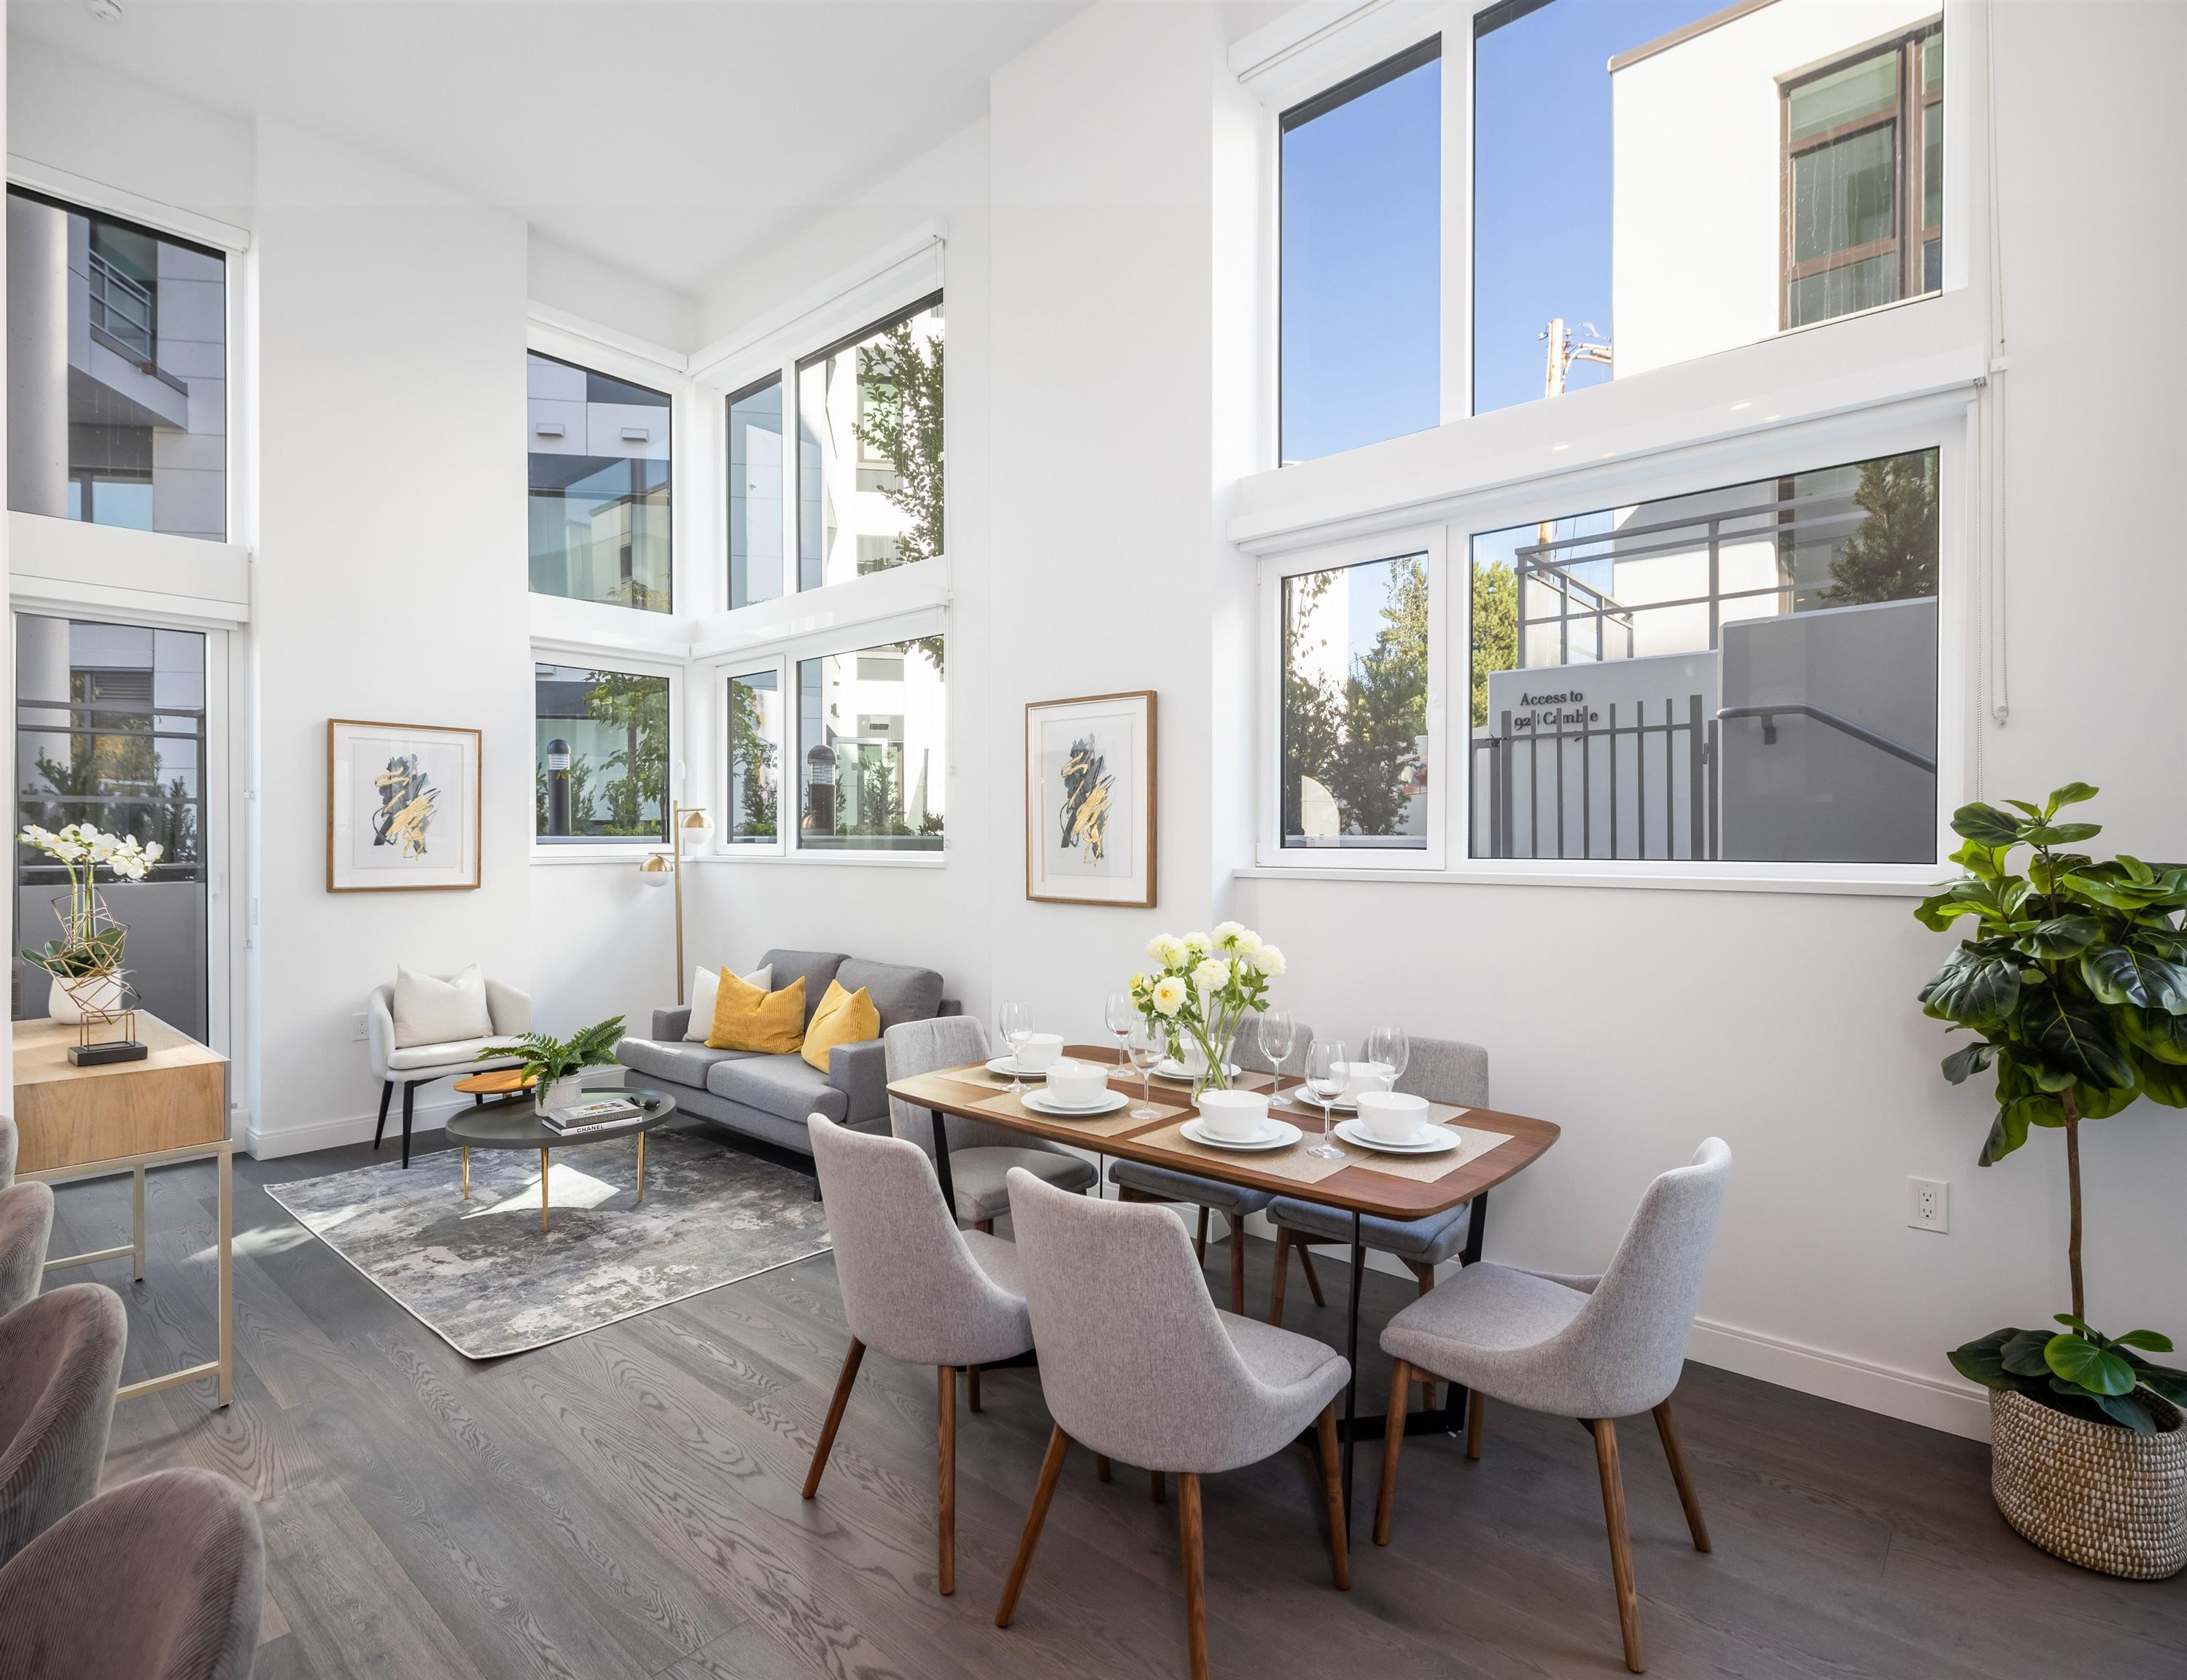 """Main Photo: 101 4932 CAMBIE Street in Vancouver: Fairview VW Condo for sale in """"PRIMROSE BY TRANSCA"""" (Vancouver West)  : MLS®# R2621382"""